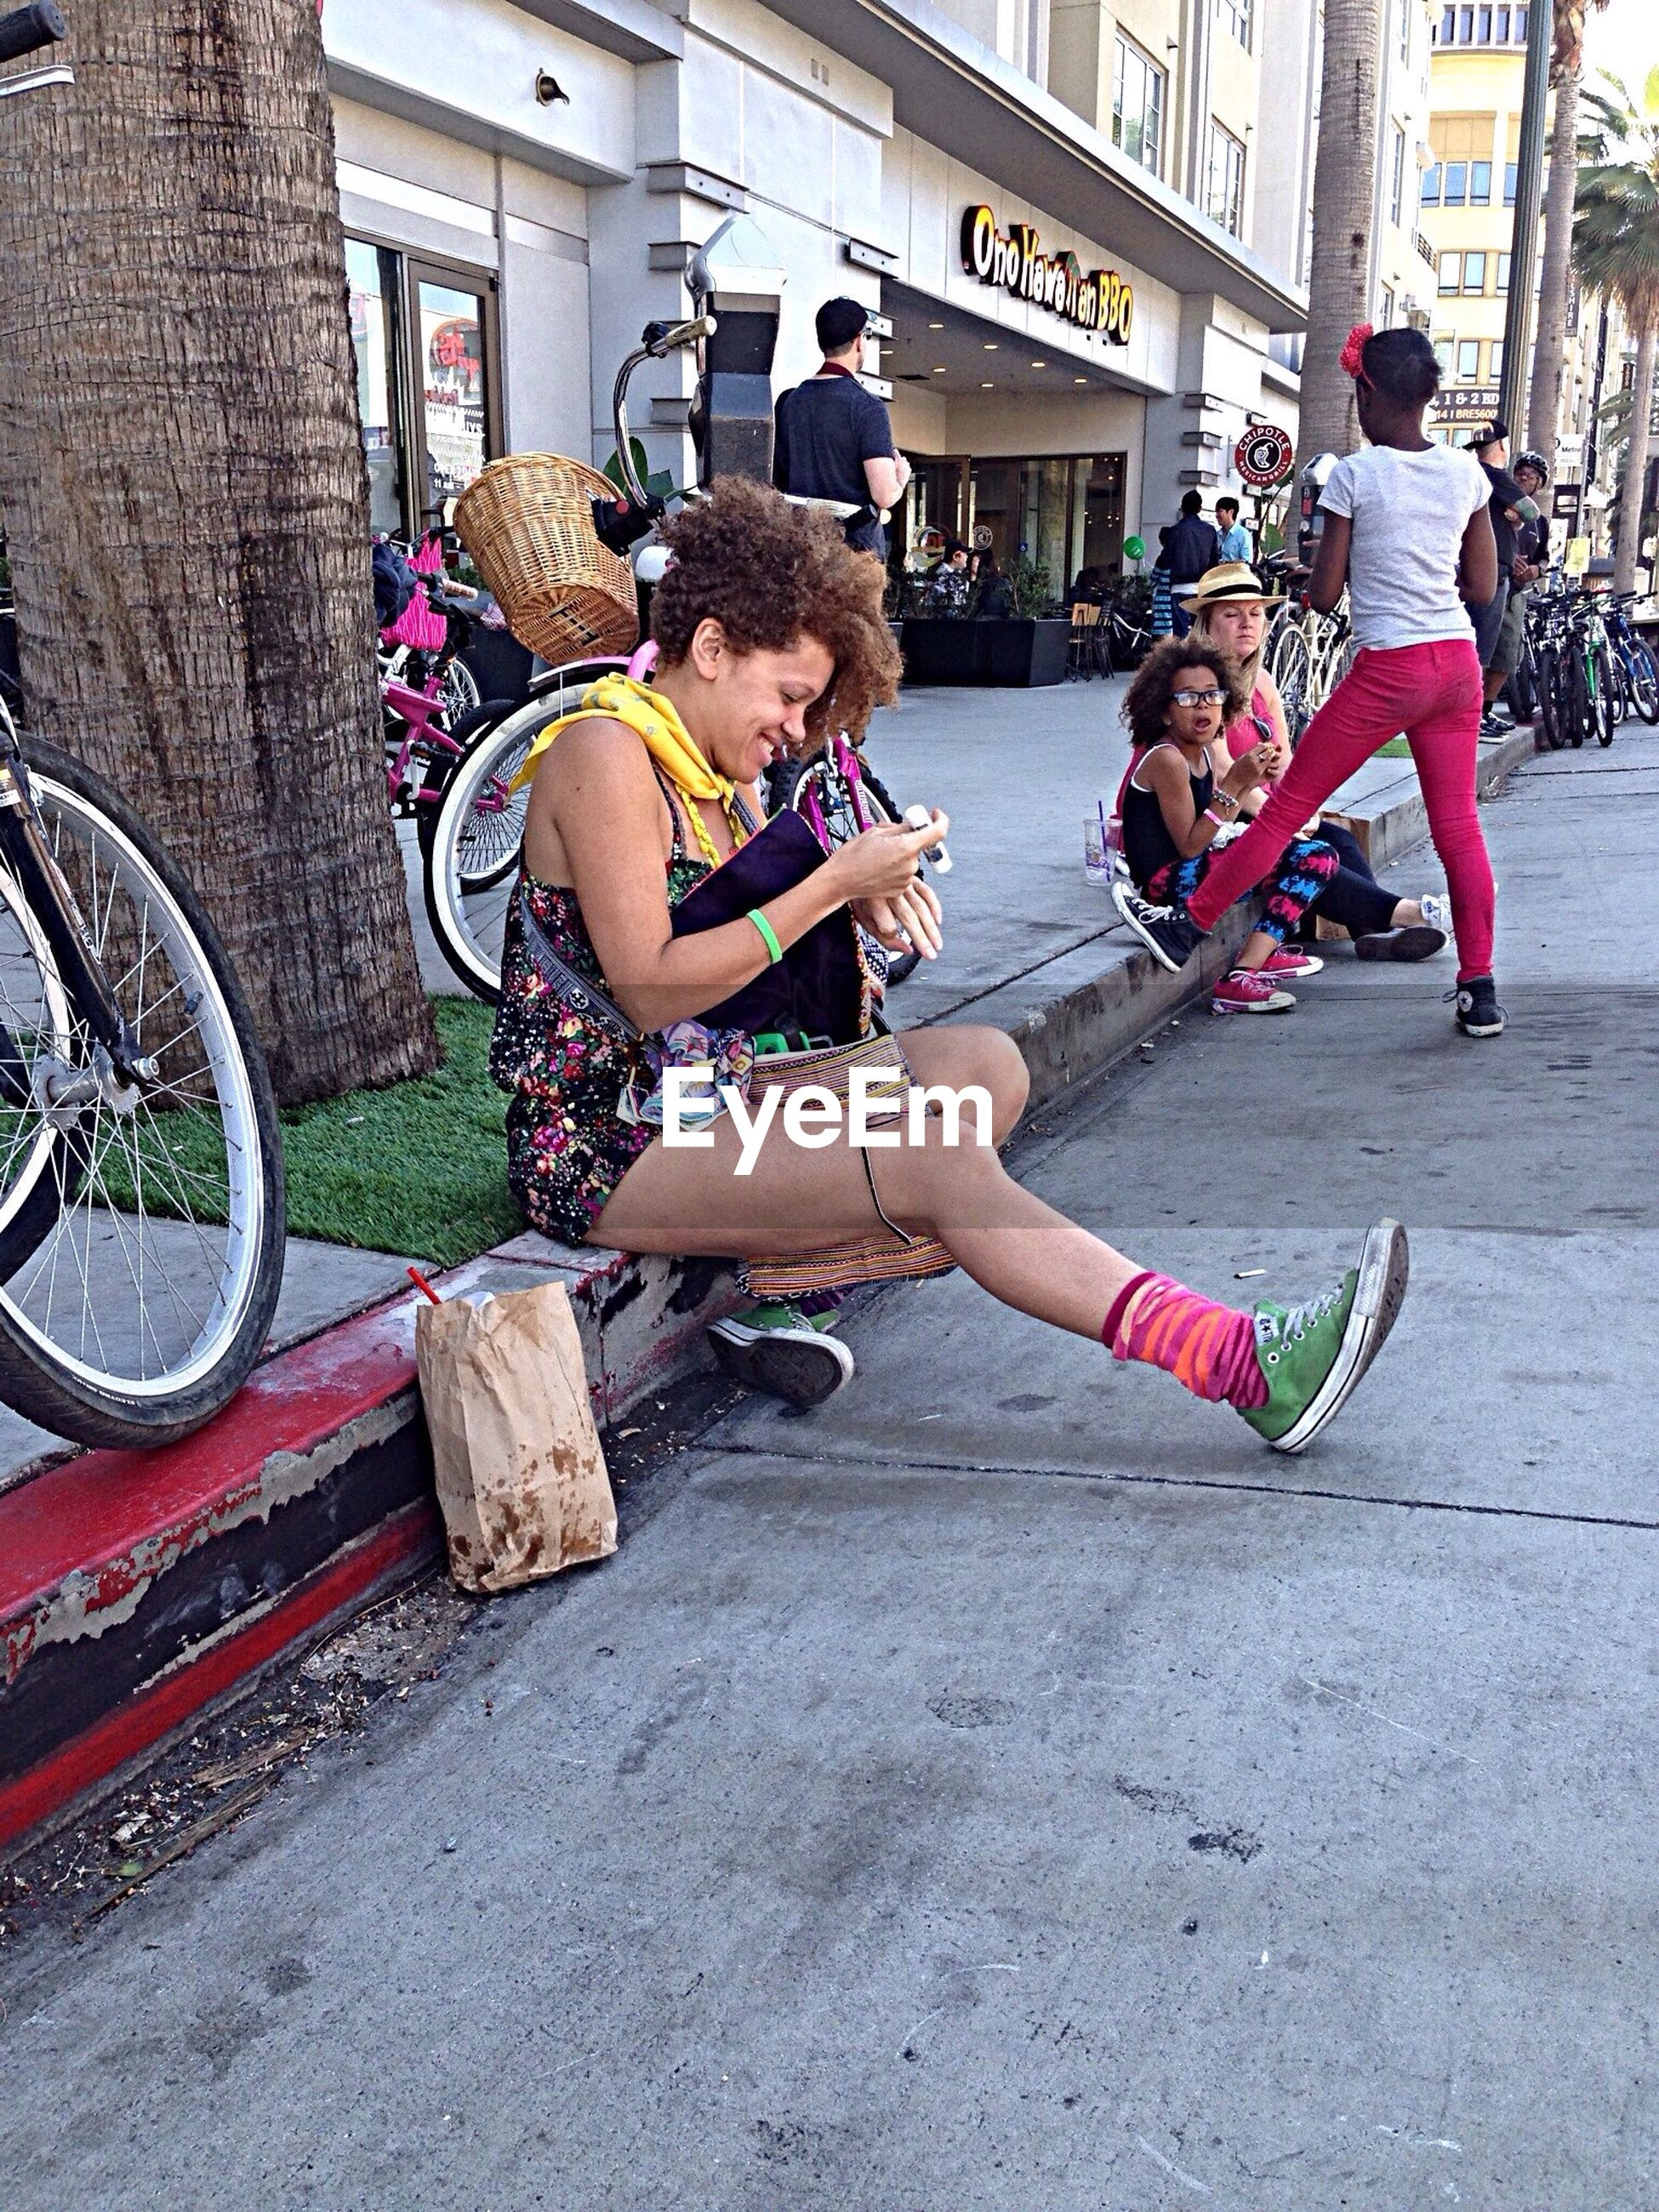 lifestyles, leisure activity, full length, sitting, casual clothing, land vehicle, person, childhood, mode of transport, togetherness, bicycle, girls, street, transportation, men, boys, elementary age